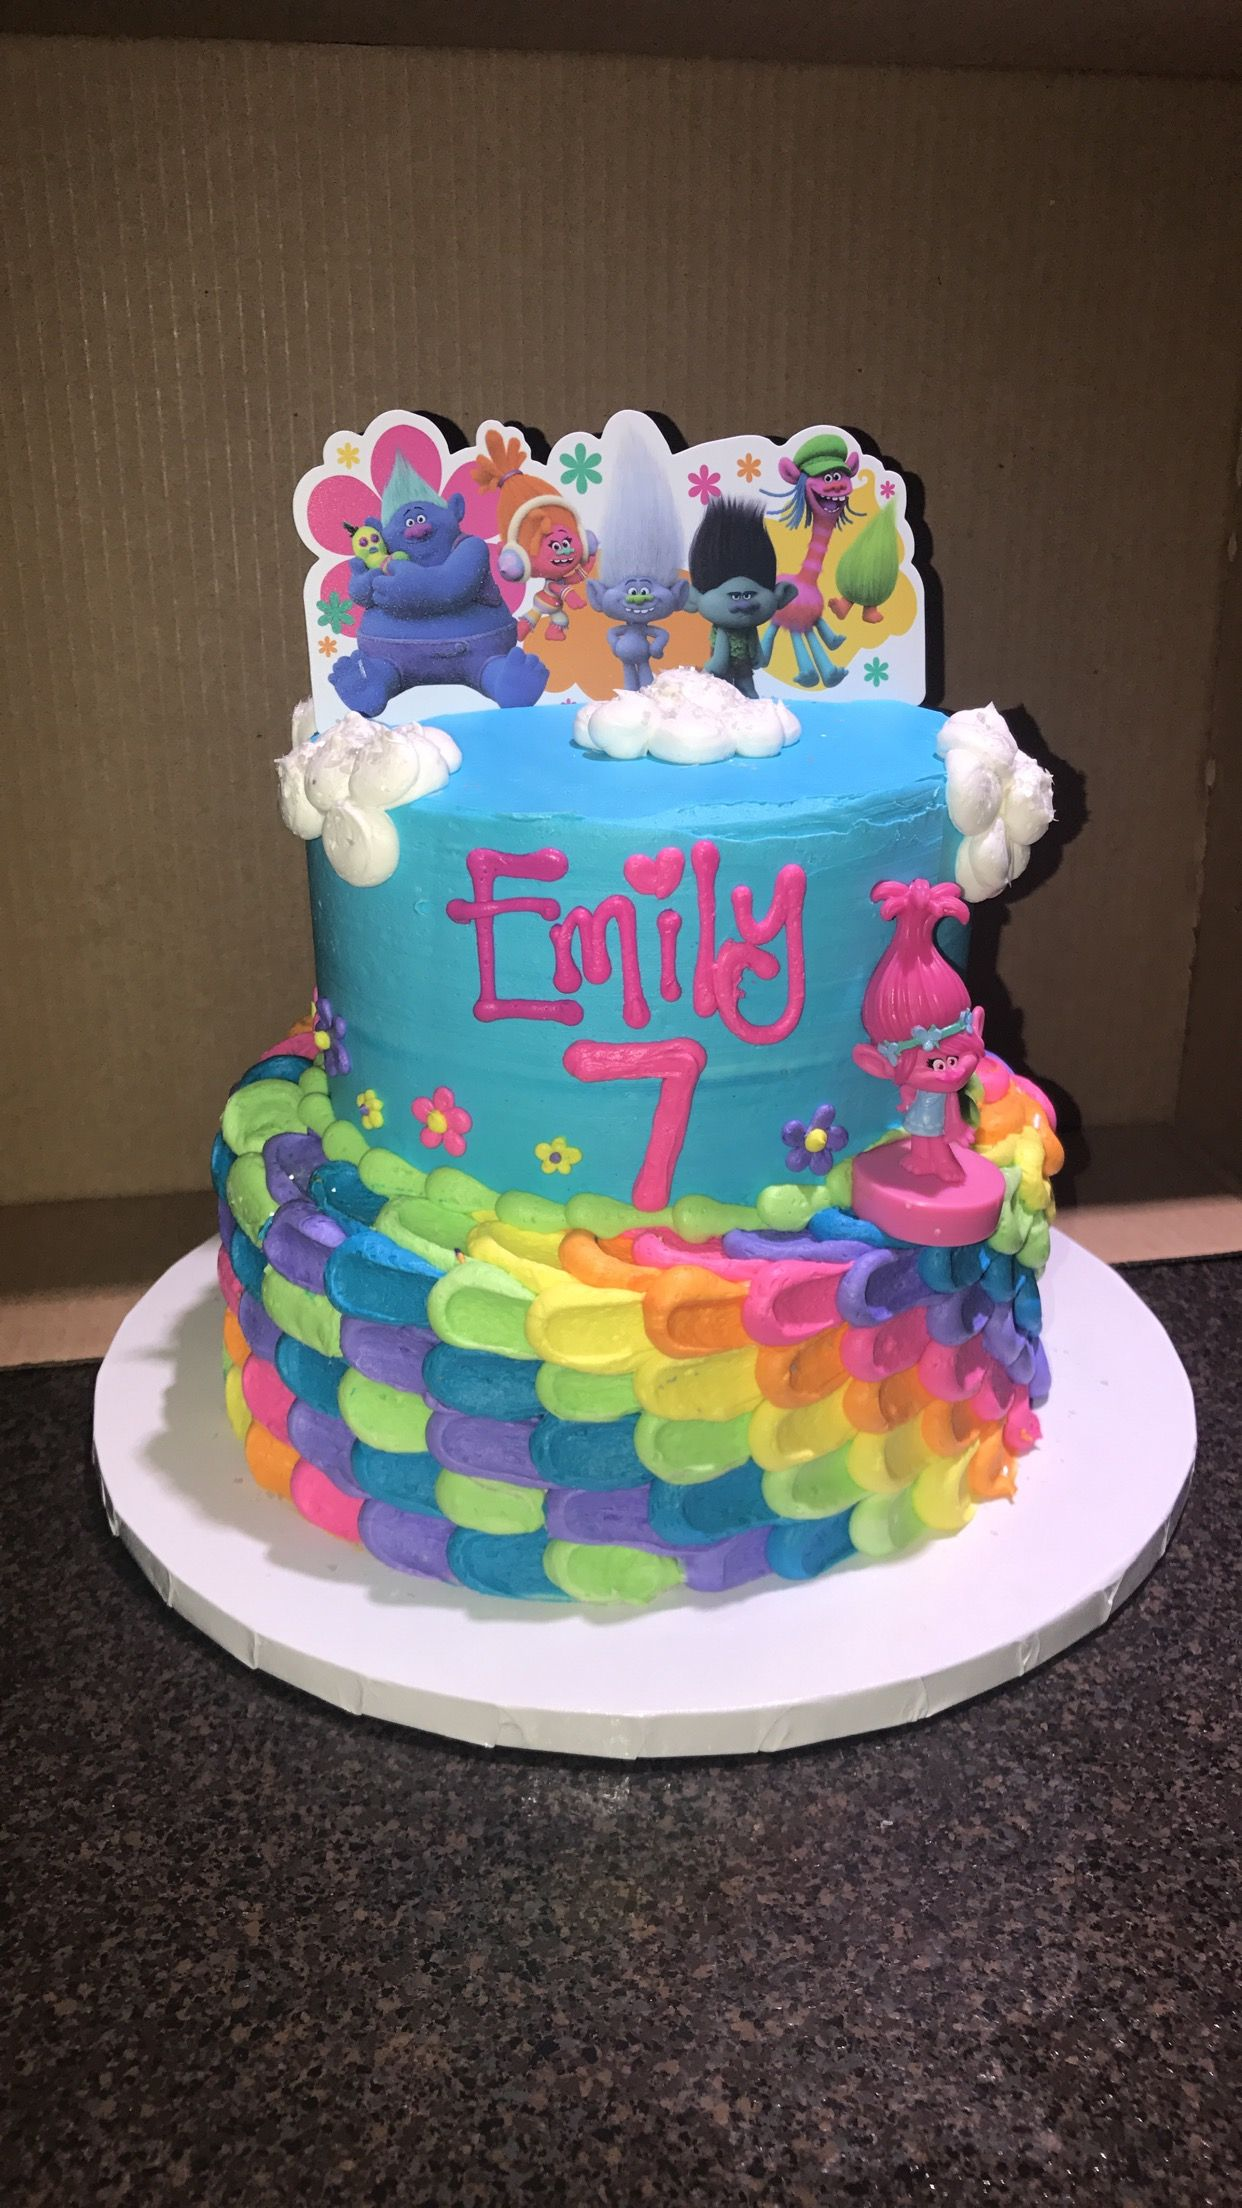 Hyvee Lincoln 1 Trolls two tiered cake Cakes Pinterest Birthdays